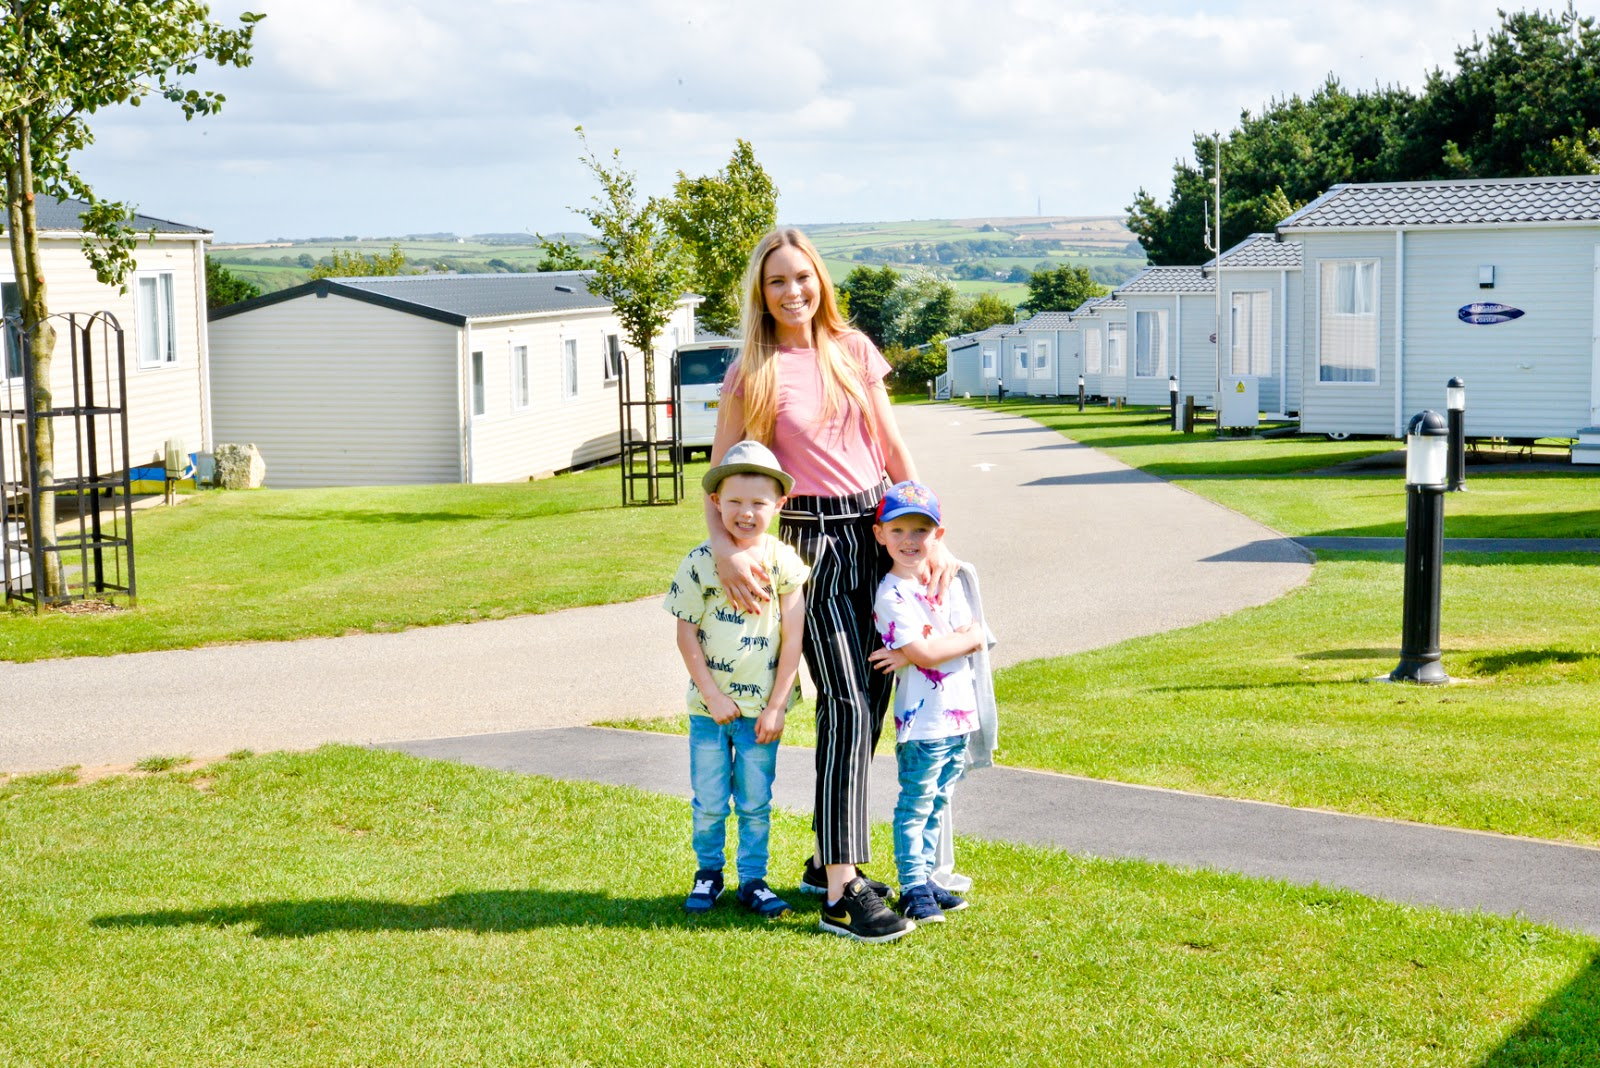 hendra holiday park review, hendra holiday park 2019, hendra holidays